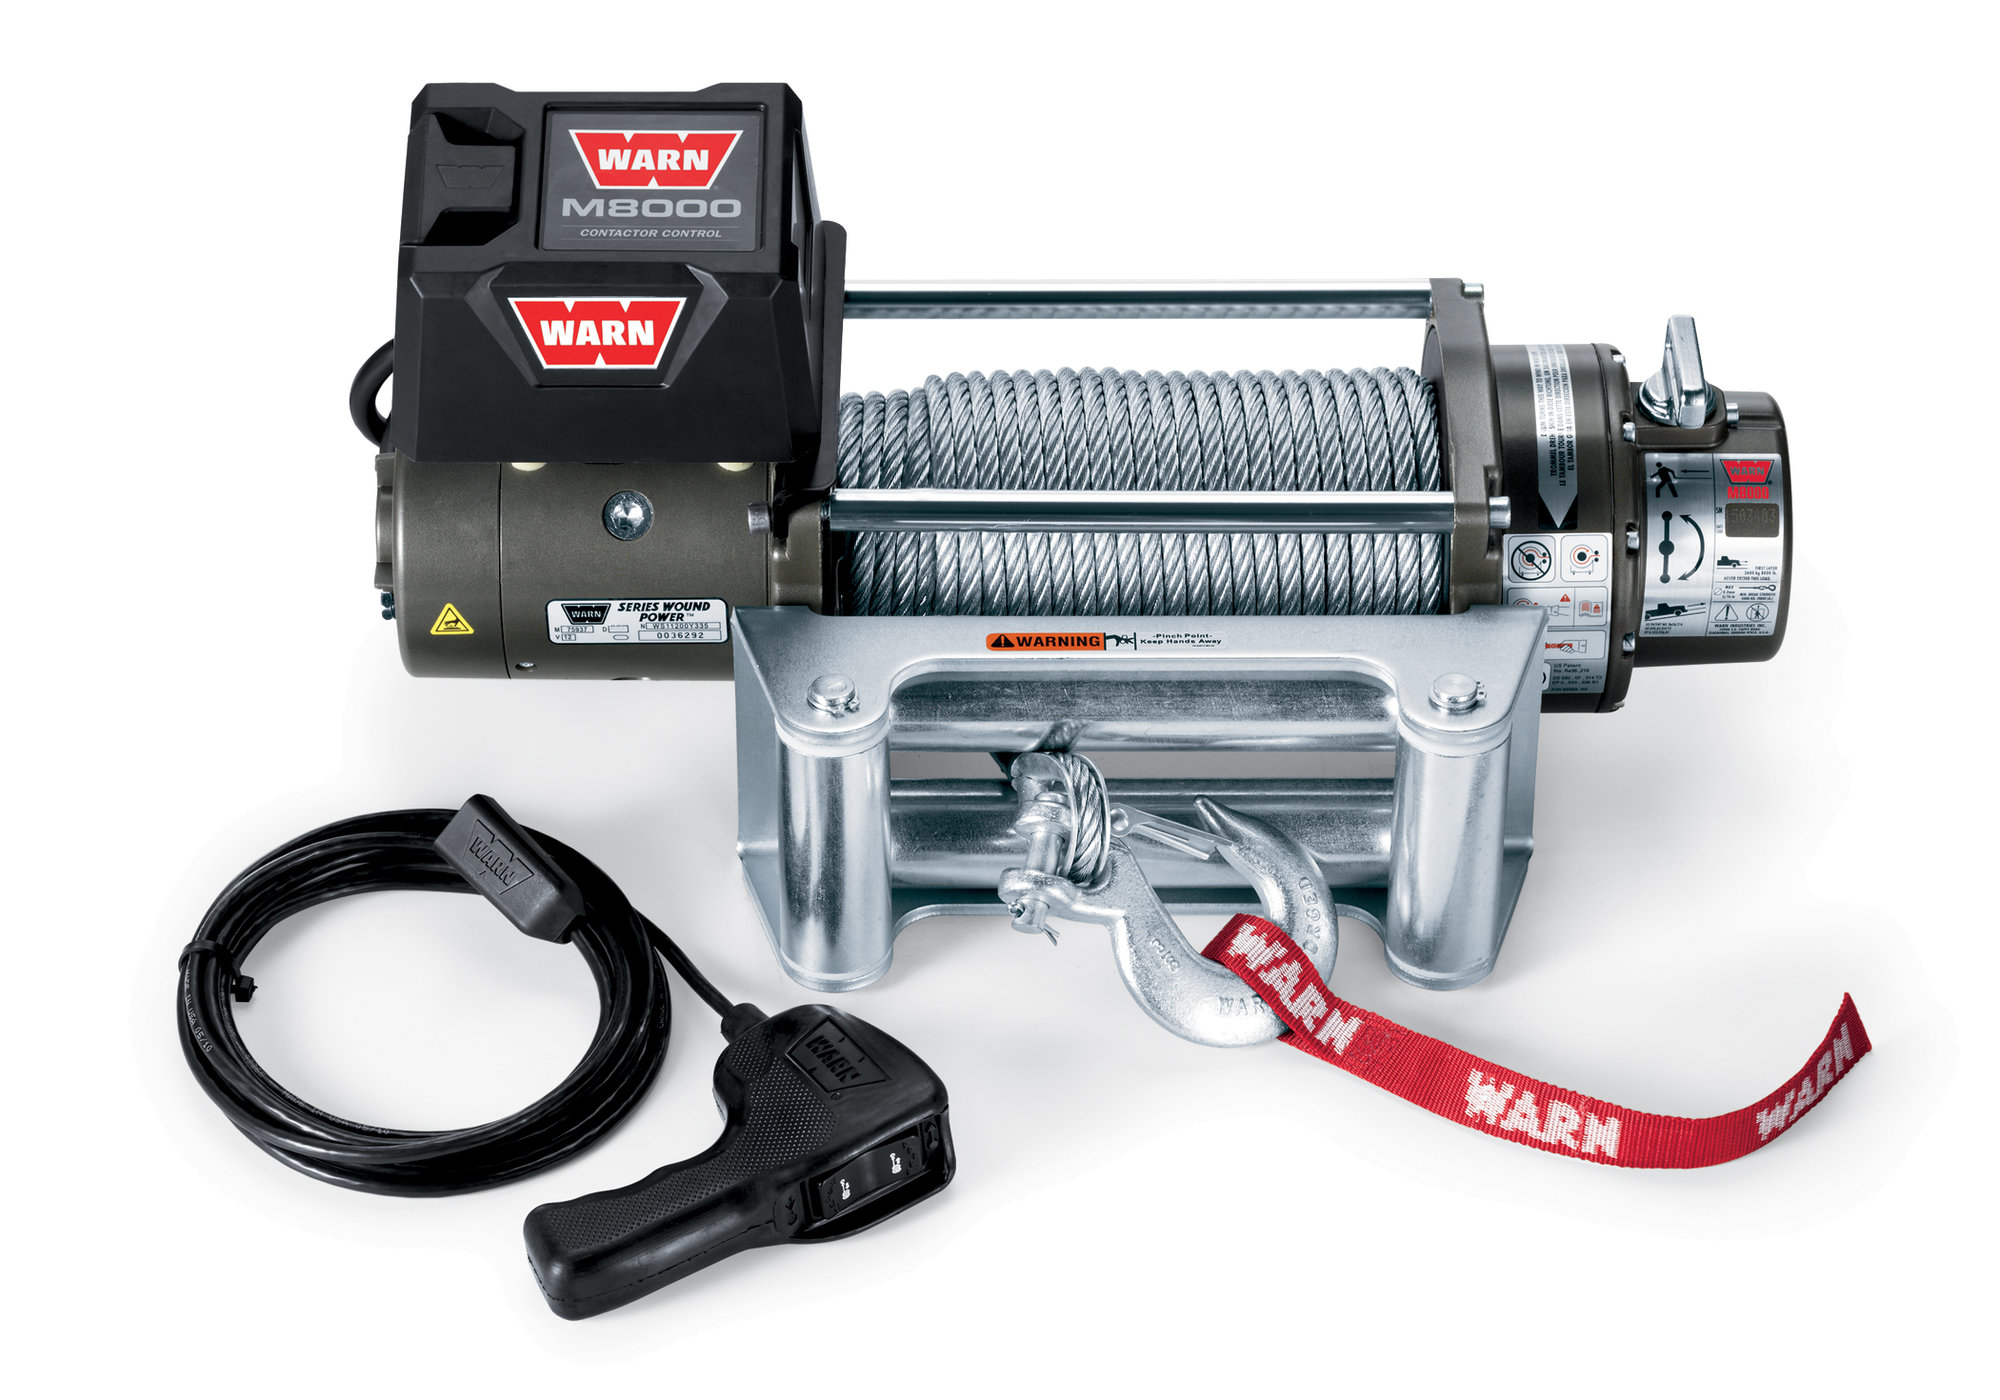 hight resolution of warn 26502 m8000 self recovery winch 12v dc 100 wire rope and roller fairlead quadratec